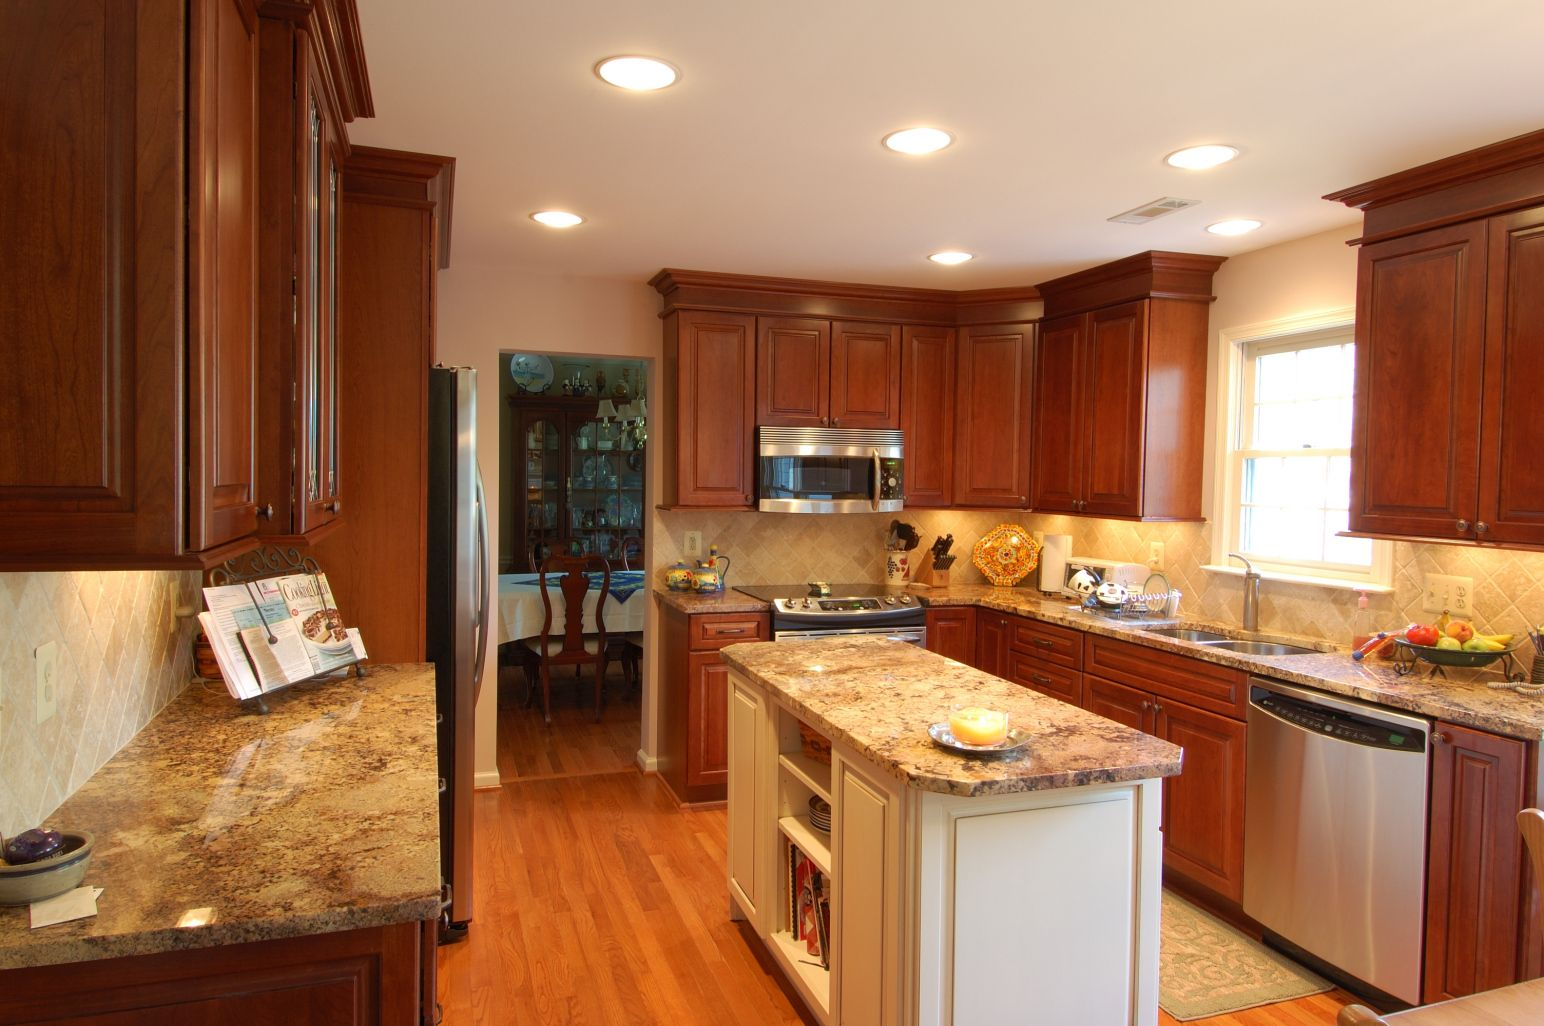 Beautiful Average Cost Of Kitchen Remodel